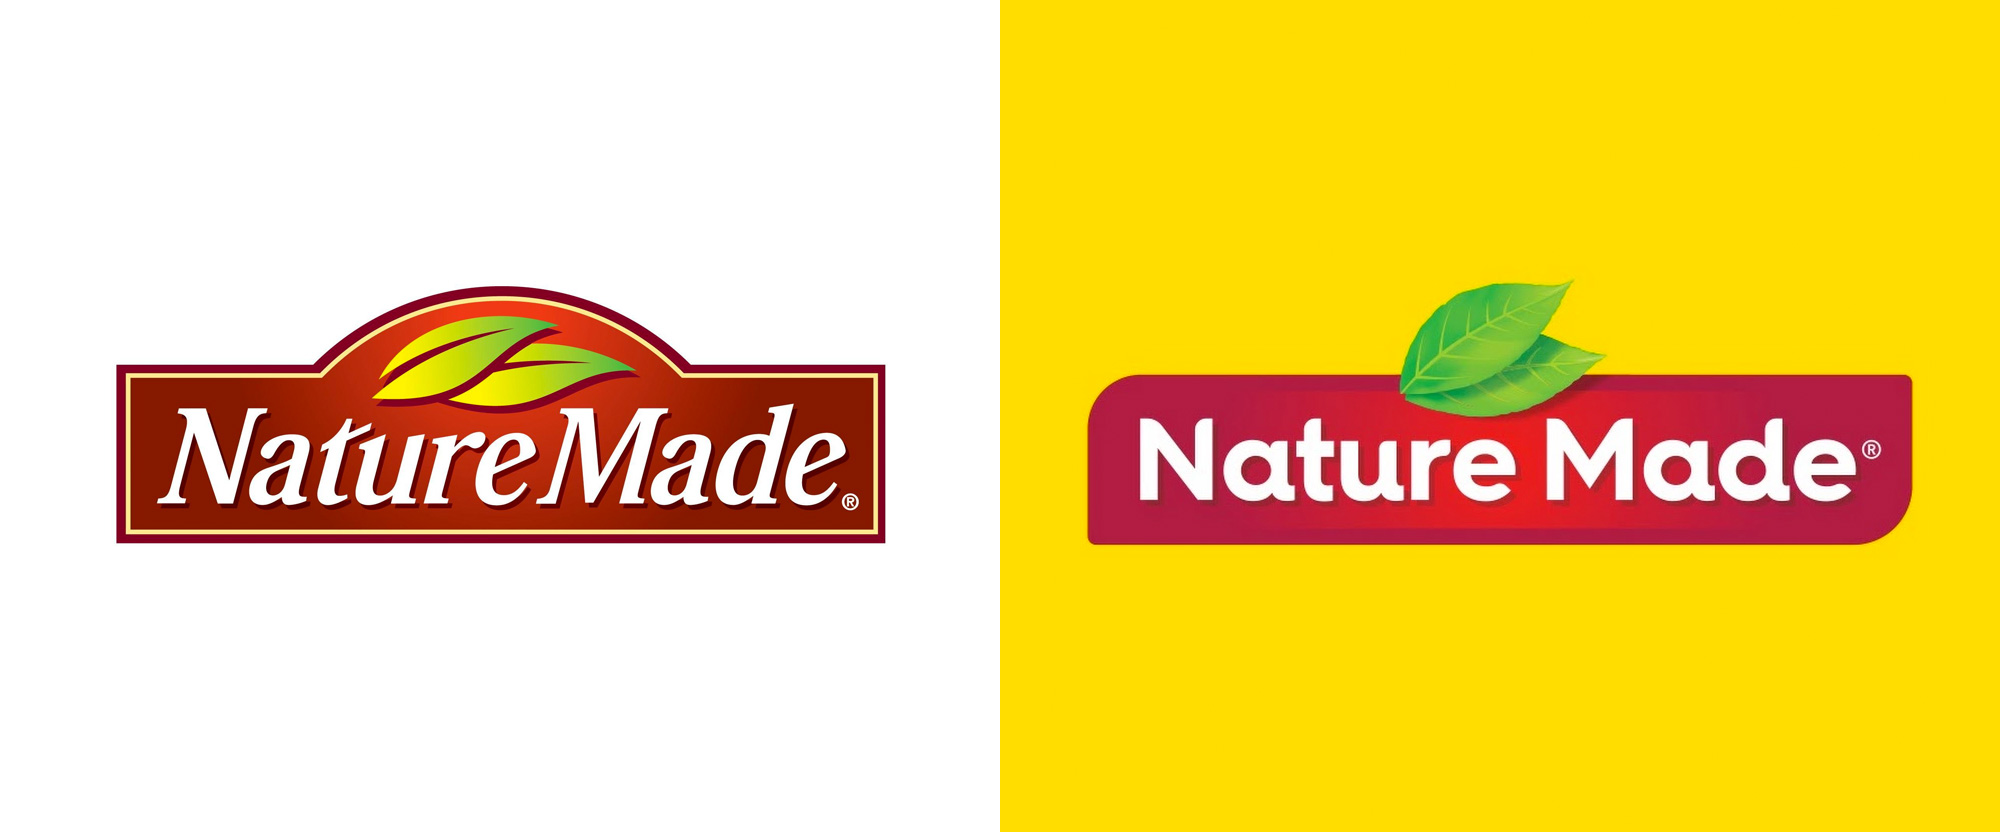 New Logo and Packaging for Nature Made